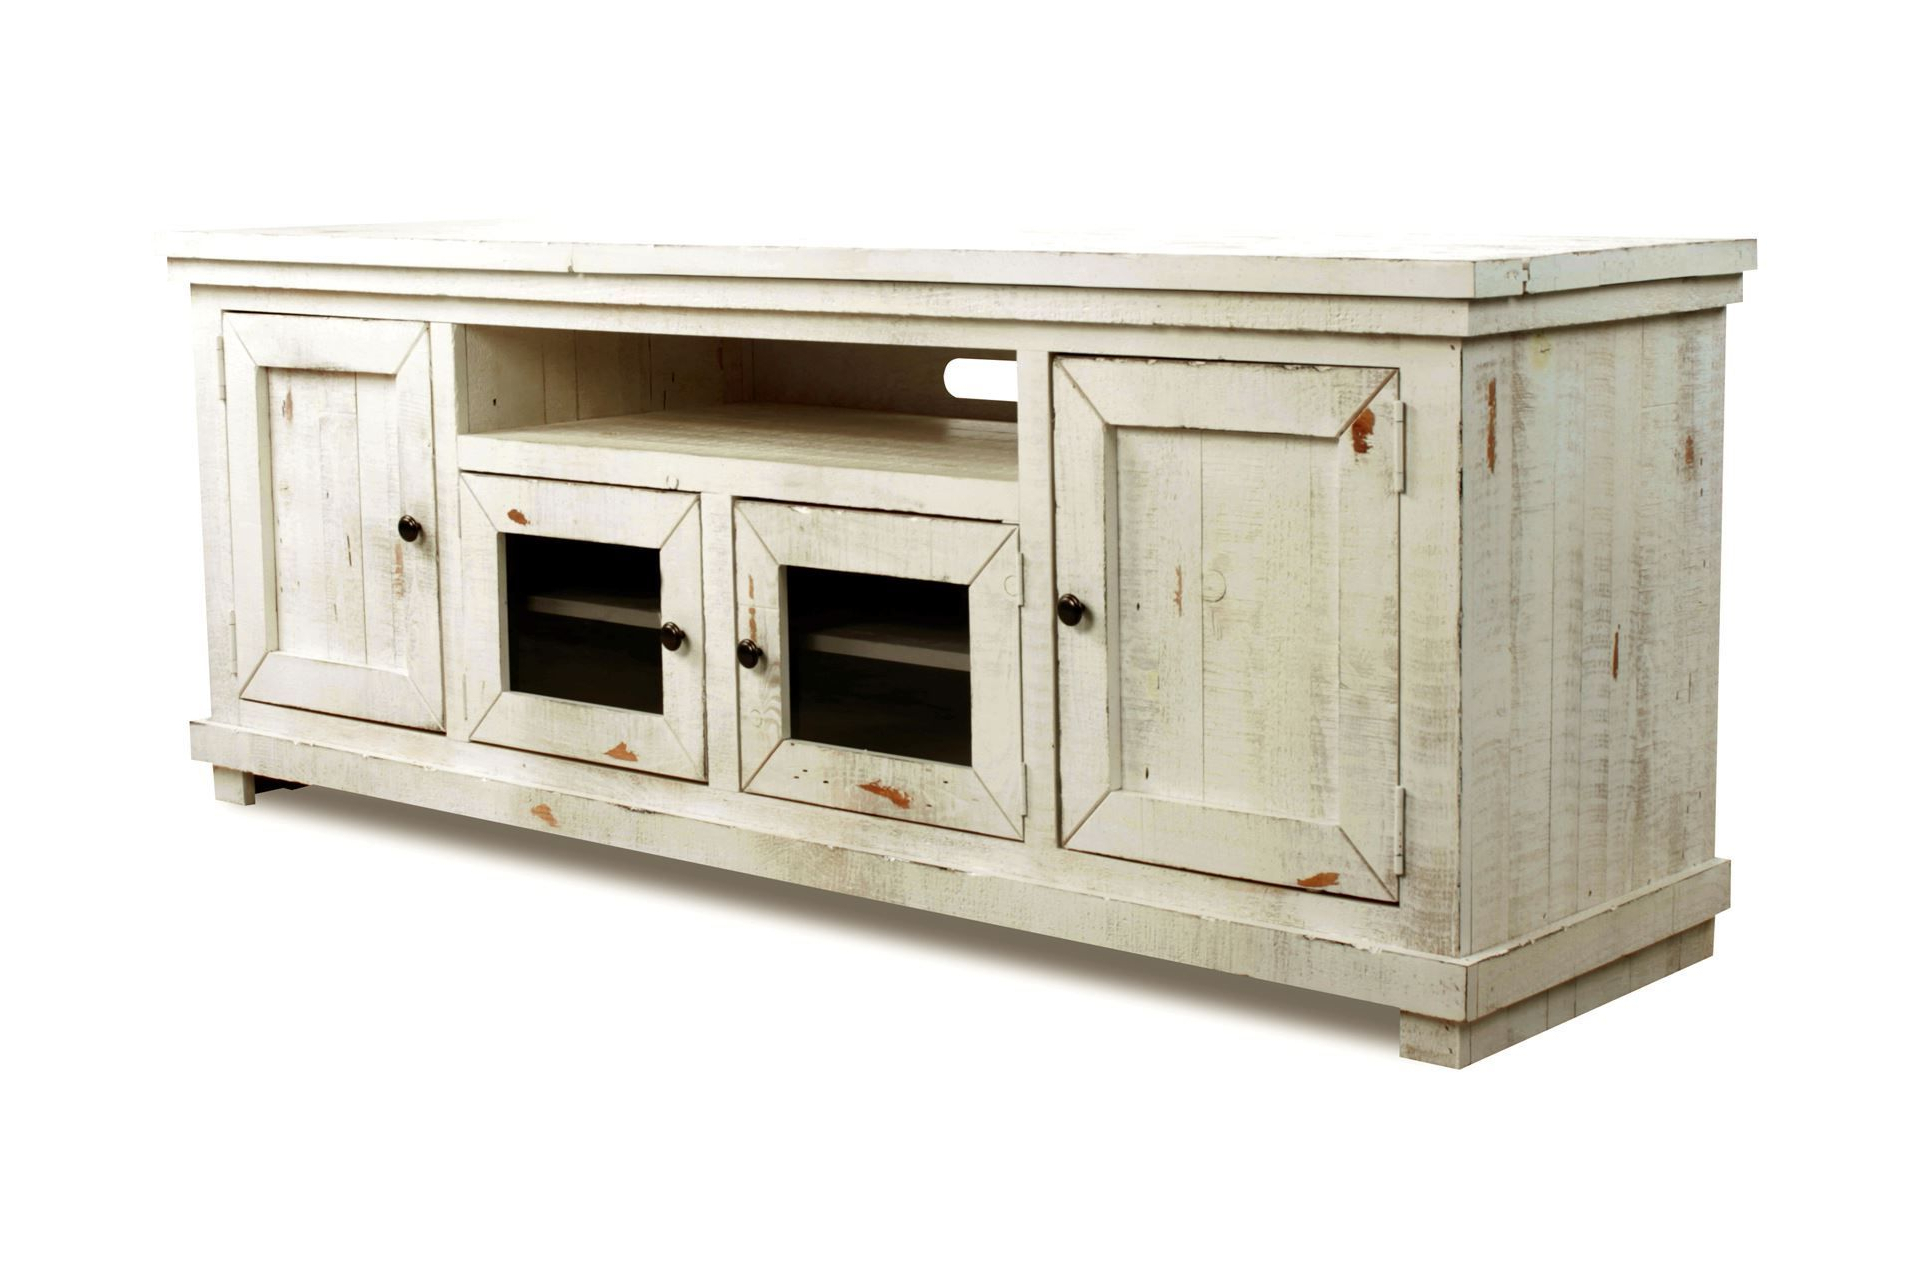 Sinclair White 74 Inch Tv Stand | Furniture Collection | Living Room Inside Sinclair Grey 74 Inch Tv Stands (View 9 of 20)